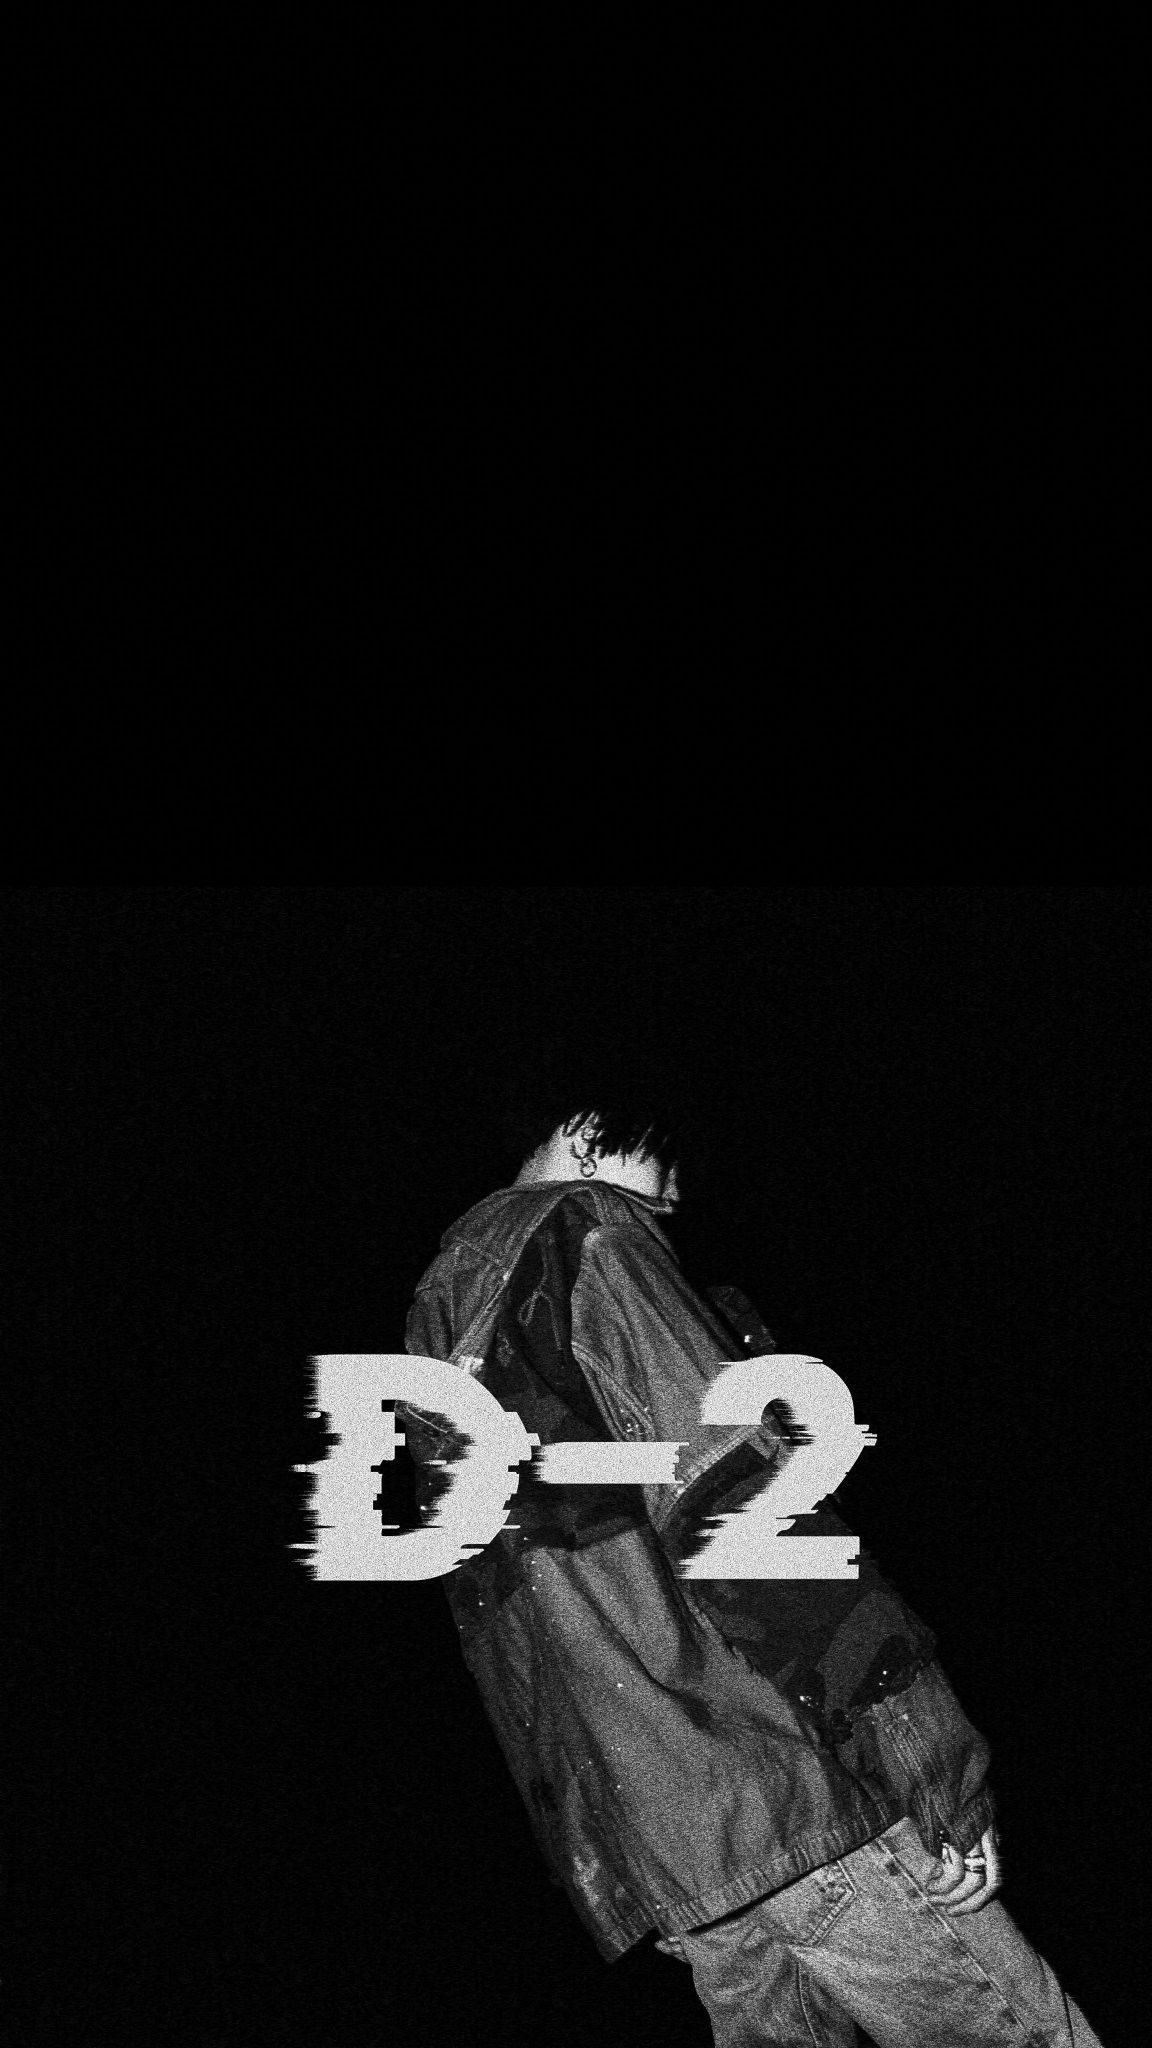 D 2 Wallpapers Bts Black And White White Aesthetic Photography Black Aesthetic Wallpaper